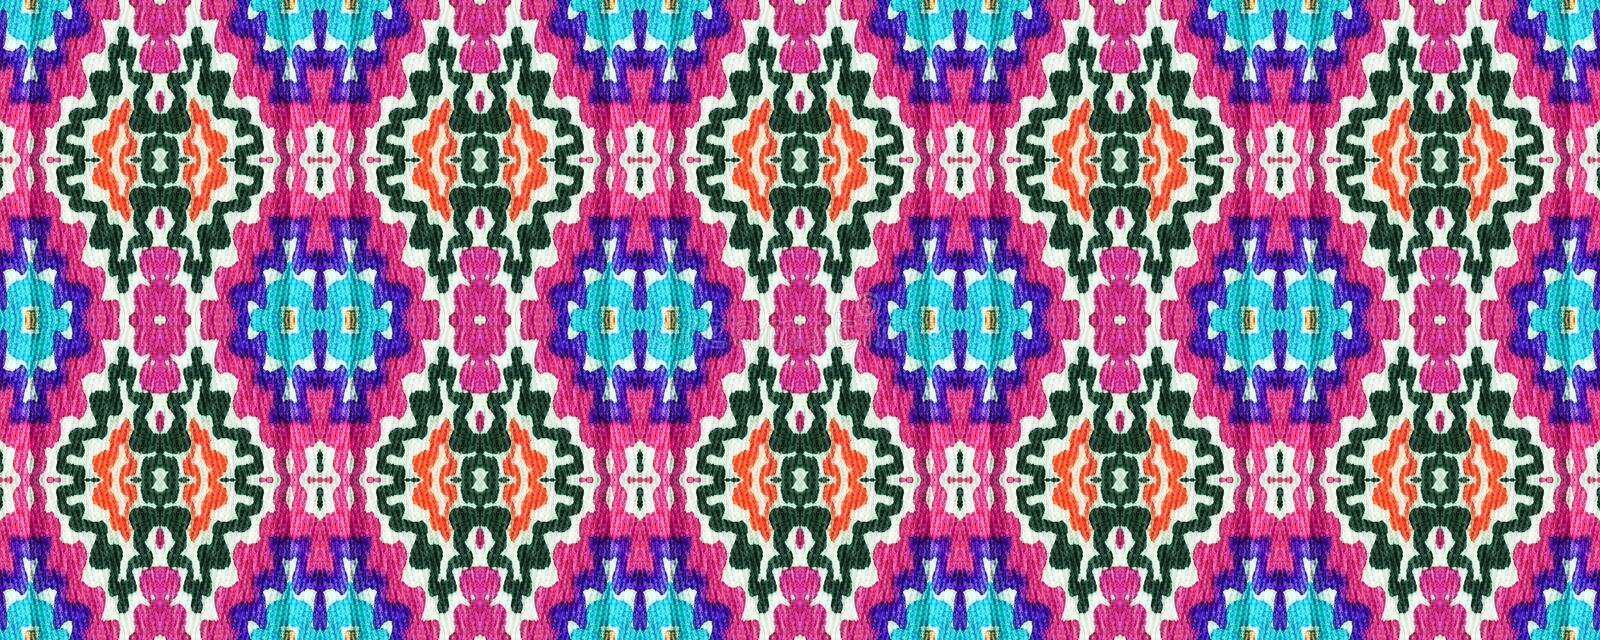 Ikat Seamless Pattern. Watercolor Hand Drawn Textile. Creative Navajo Ikat Background. Allover Organic Swimwear Design. Geo Ogee Tile.  Ogee Seamless Texture royalty free stock photos